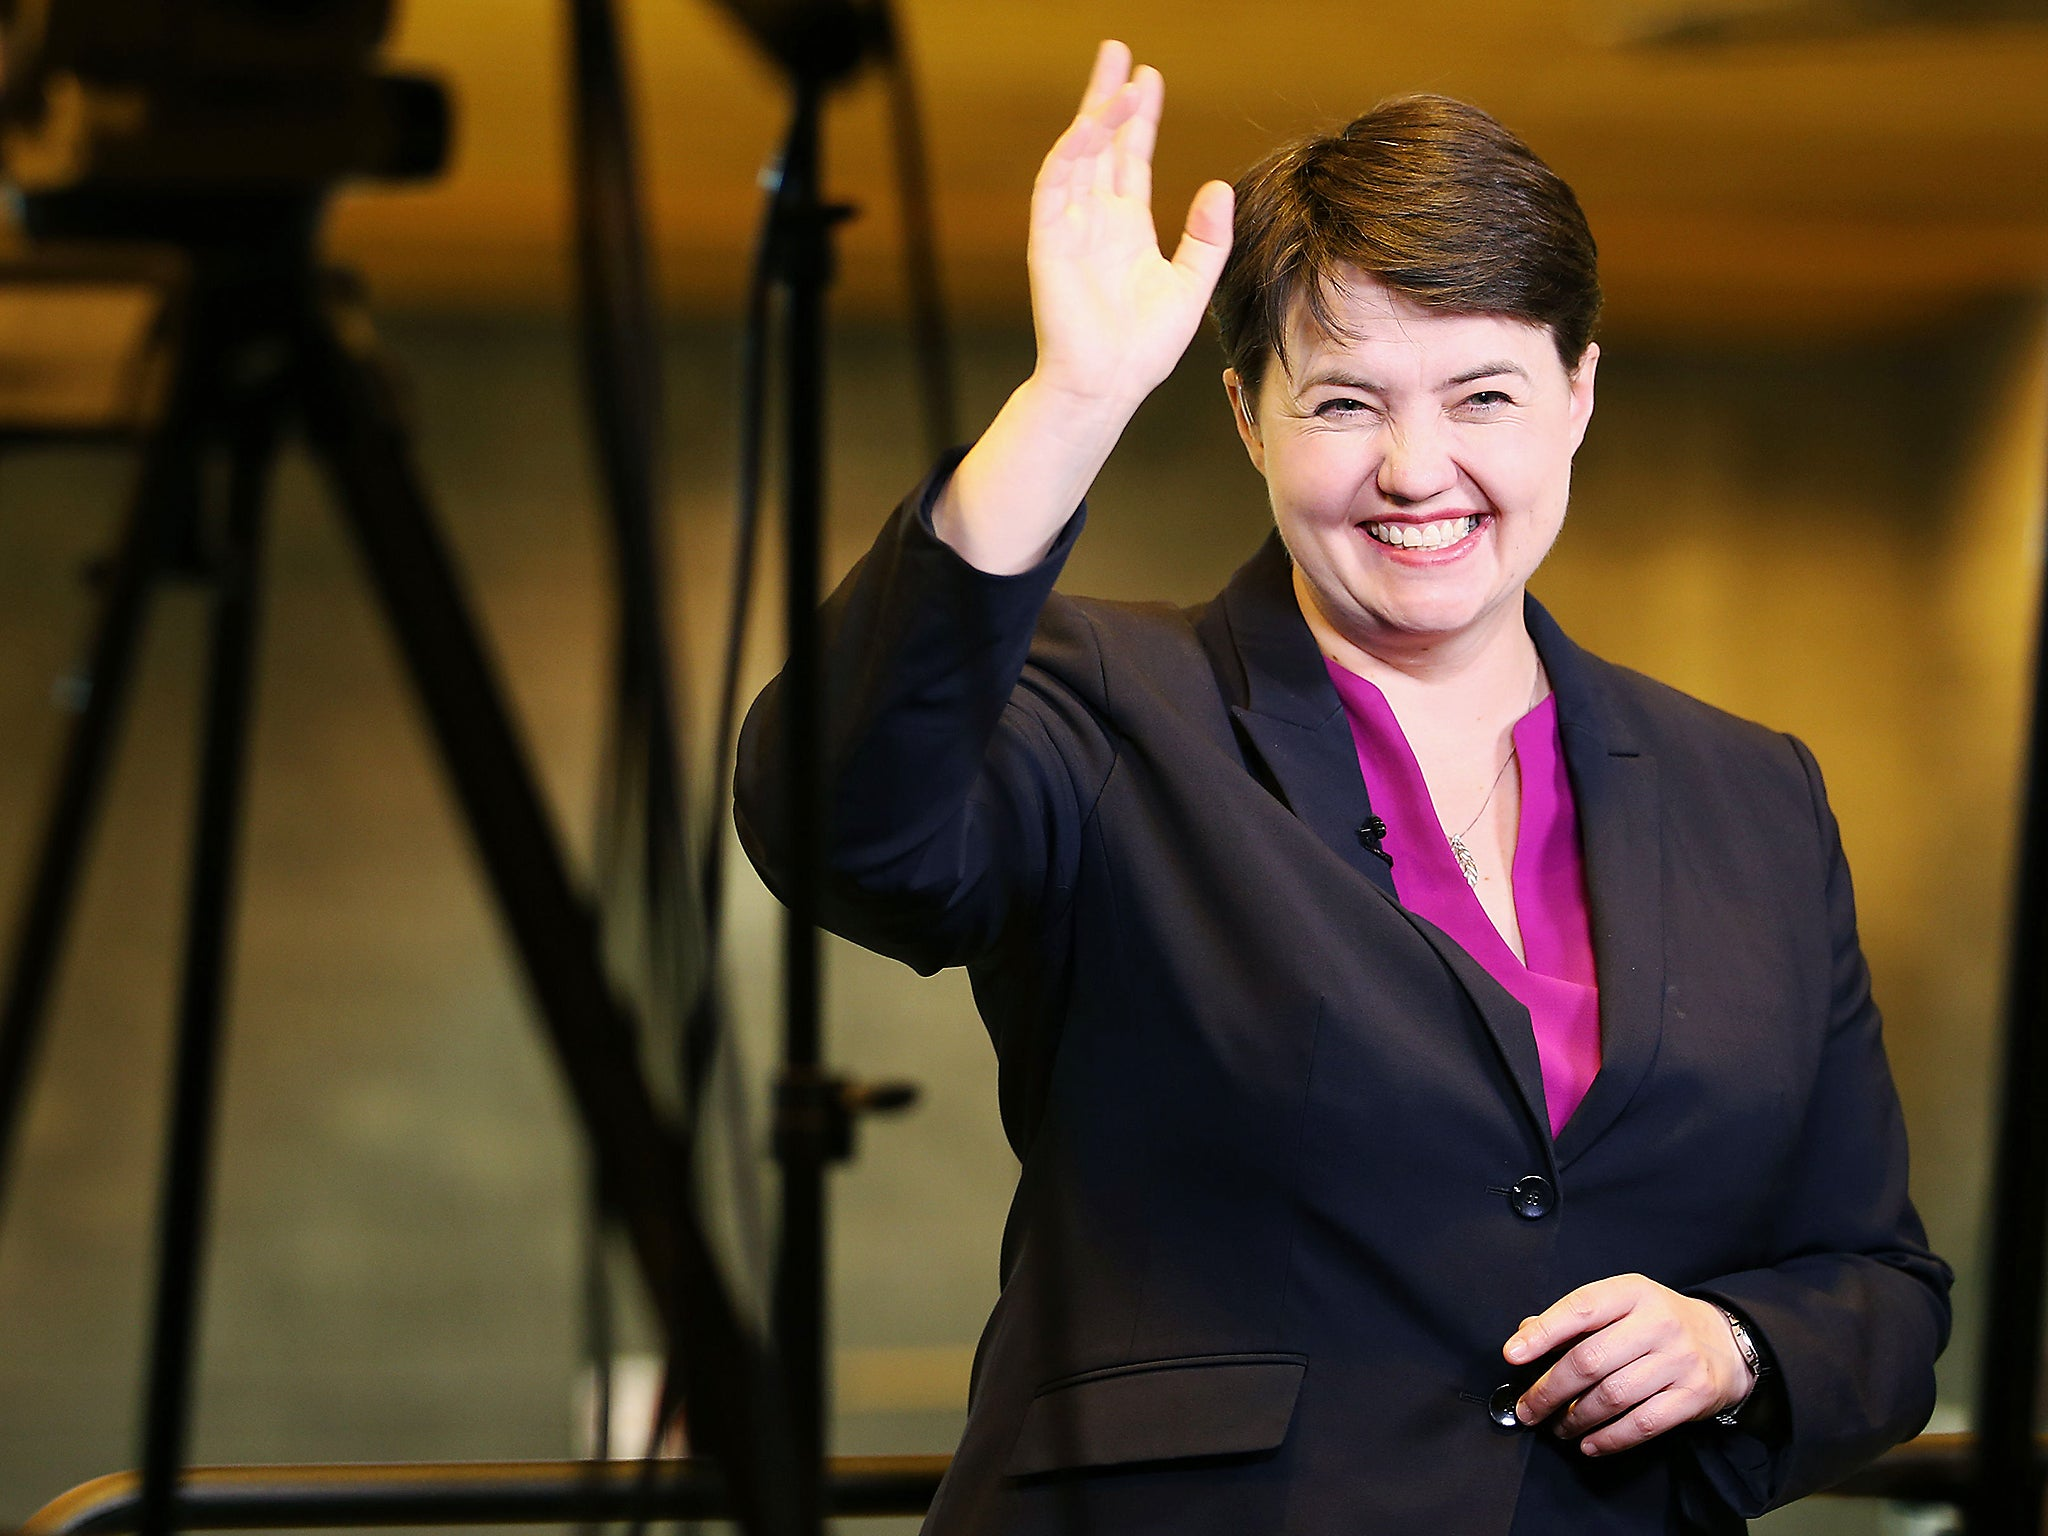 Anderson Gillian Nue ruth davidson's sexy tweet featuring a half-naked gillian